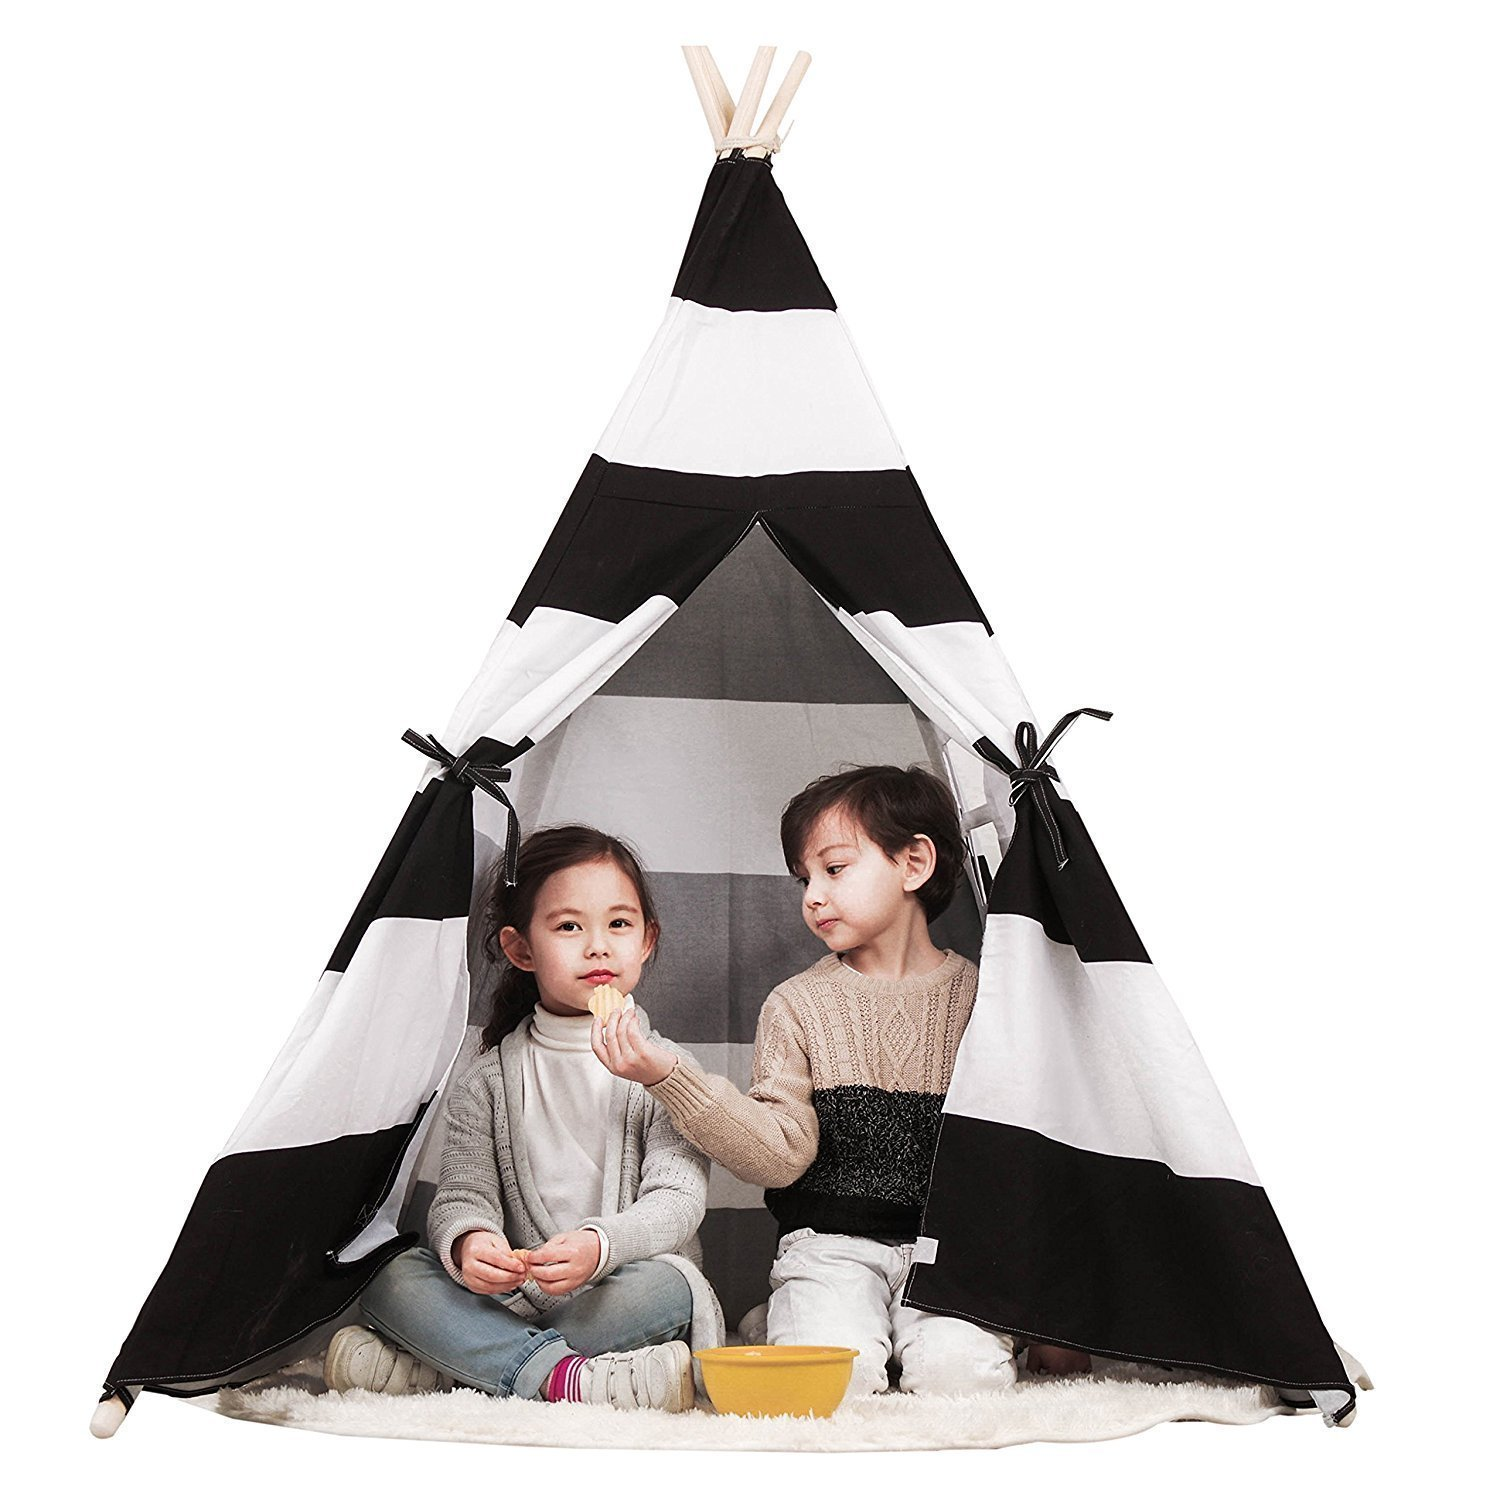 Toysland Indoor Indian Playhouse Teepee Tent for Kids, Toddlers Canvas with Carry Case, Black Stripe